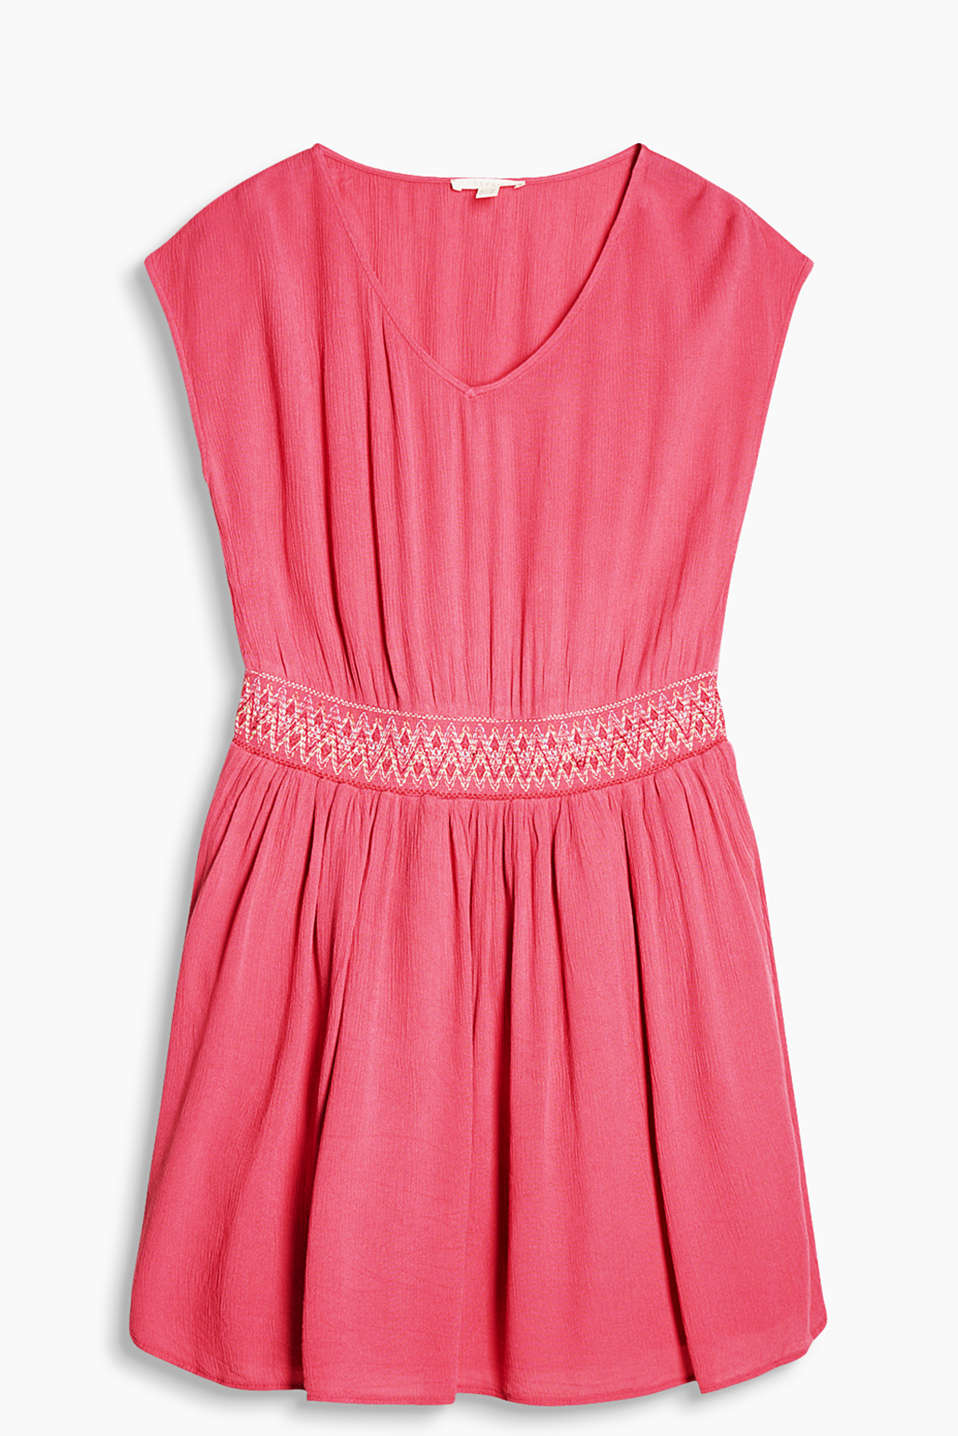 Airy crinkle dress with a bright embroidered waist and a V-neckline